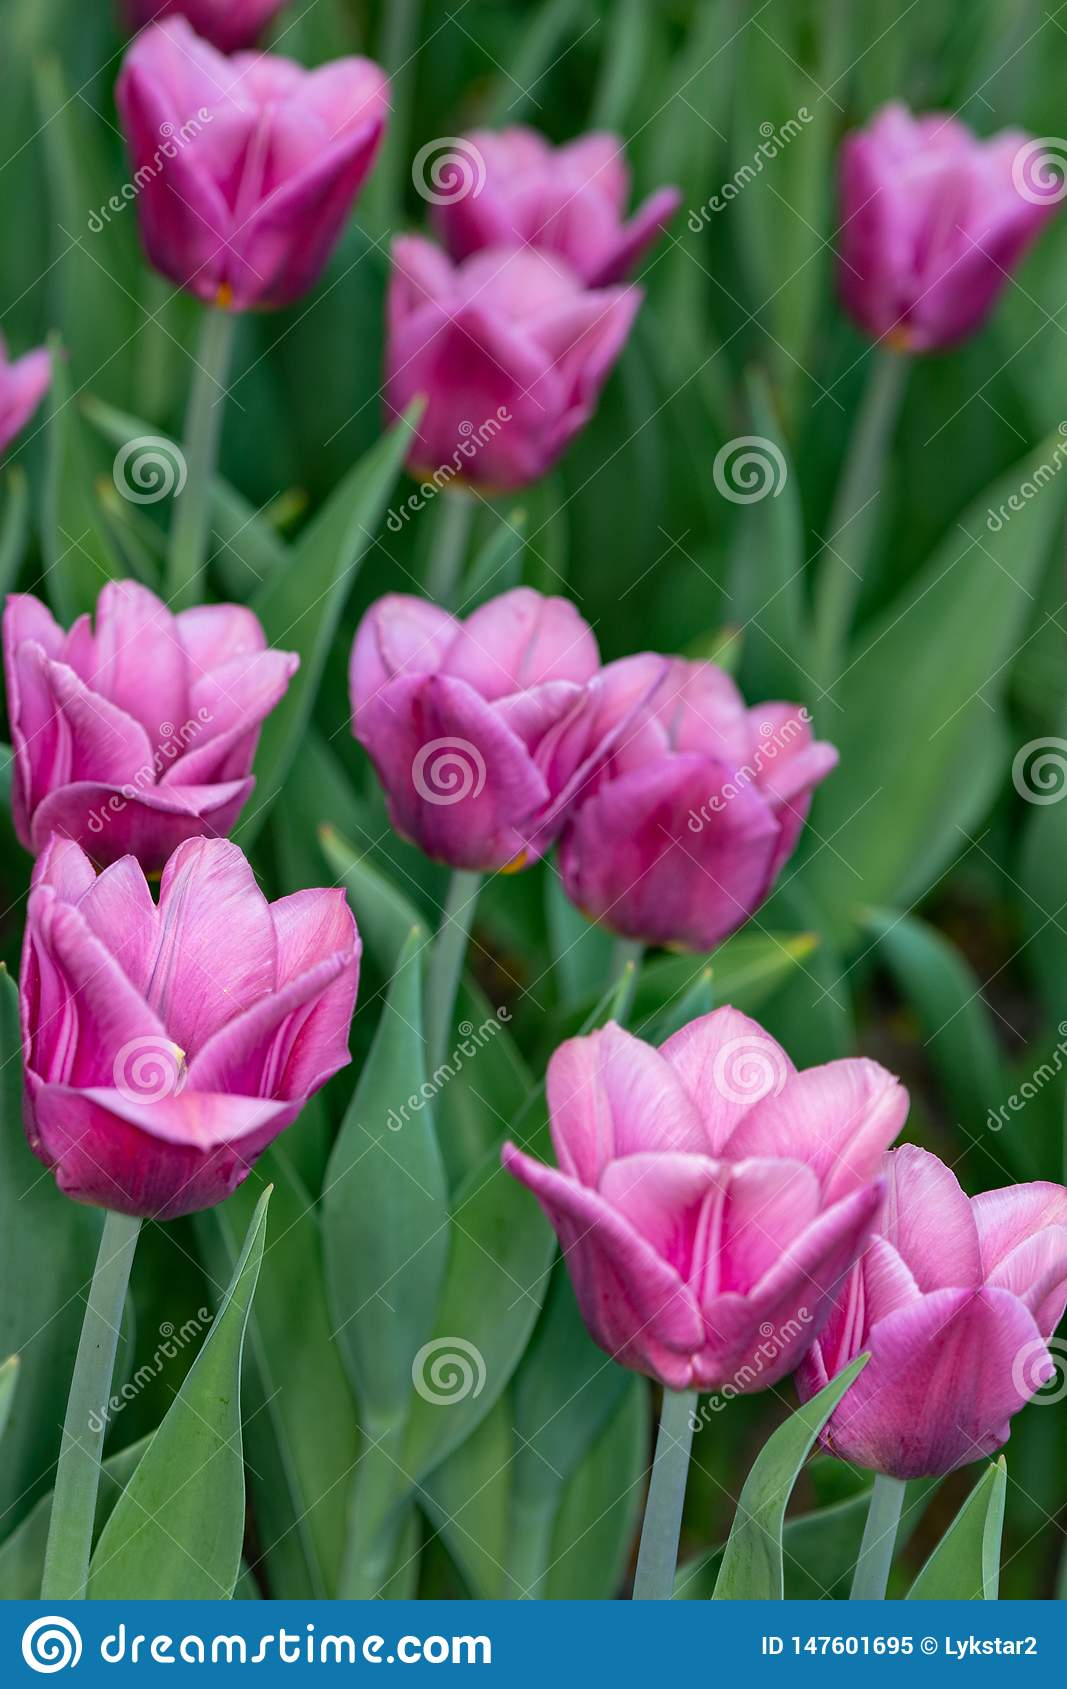 Pink tulips. Spring pink tulips blooming with green stalk in a garden field out of focus background. Concept image for seasons